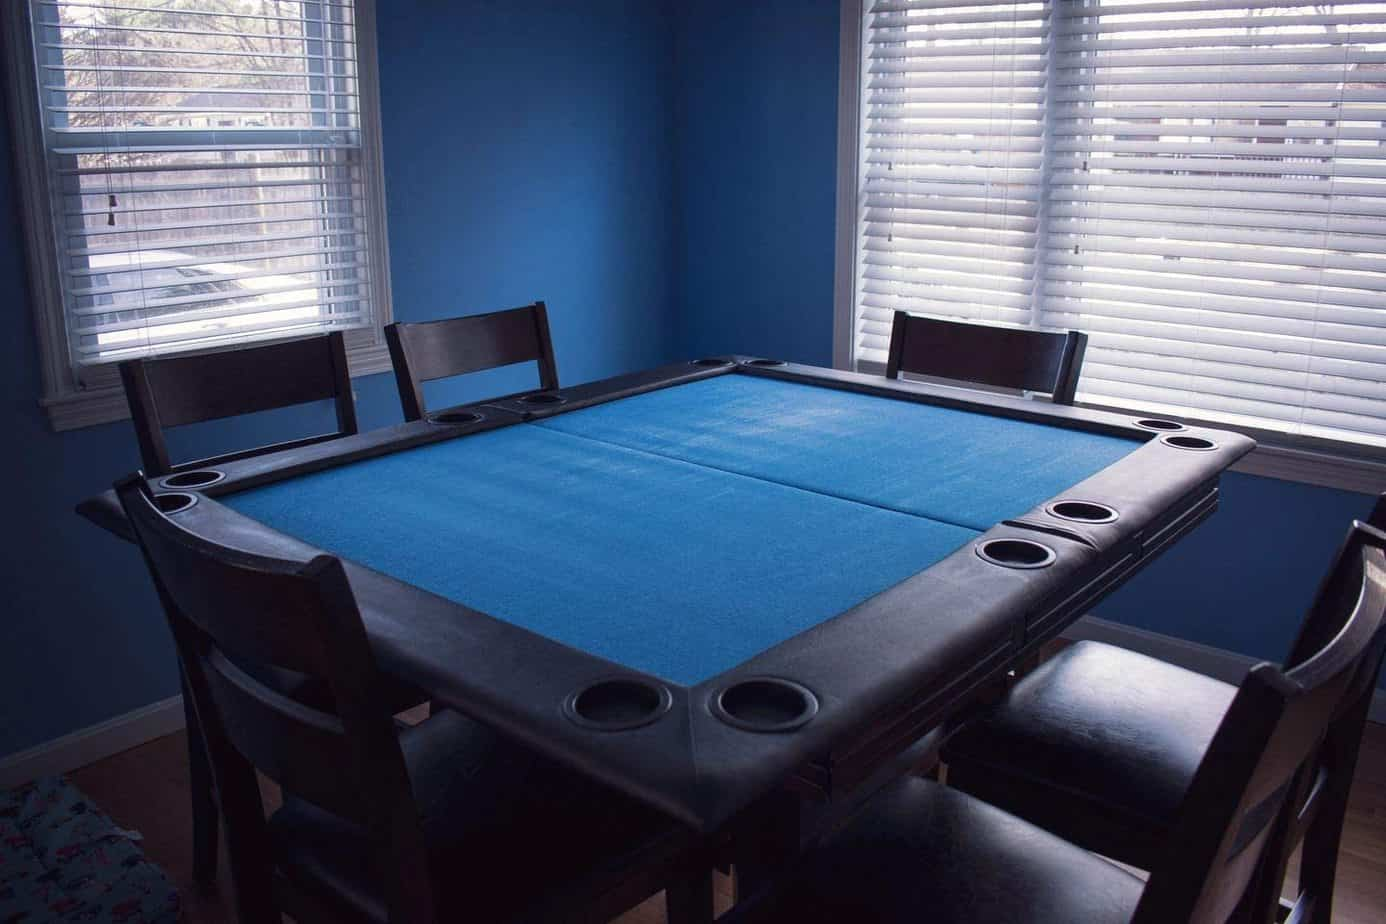 Game Night Table Topper - Poker In Man-Cave